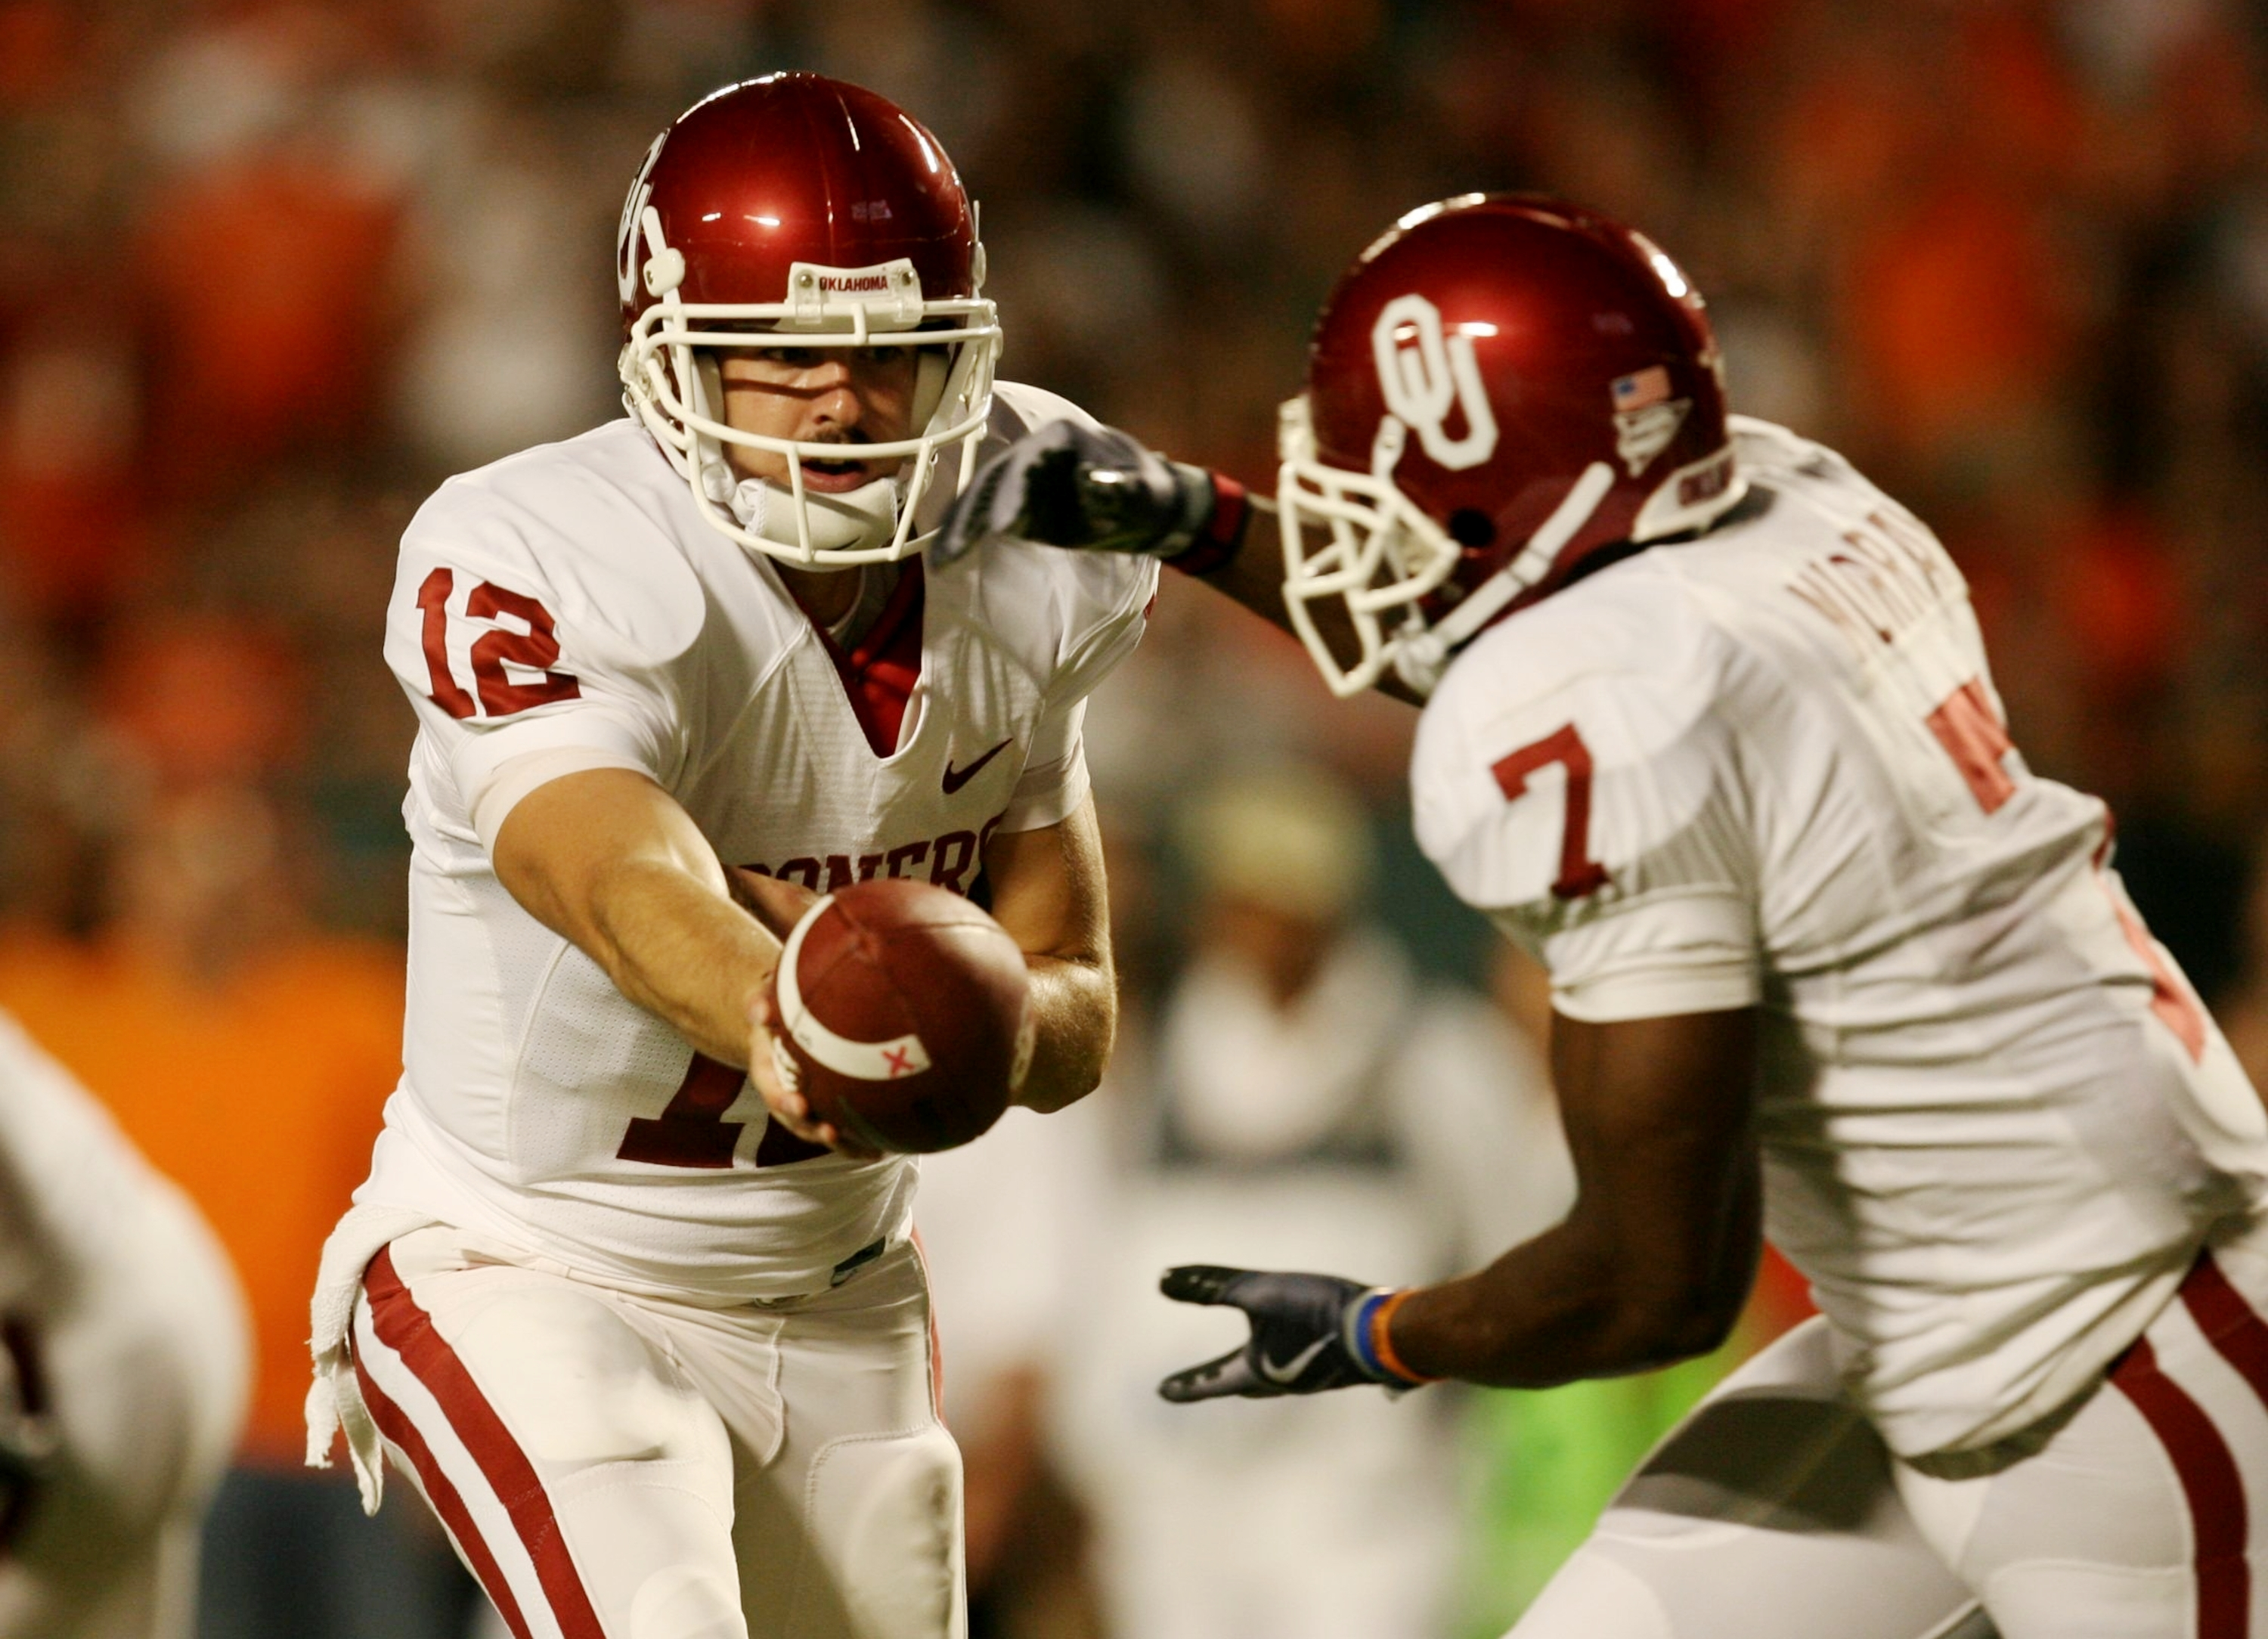 MIAMI GARDENS, FL - OCTOBER 3:   Quarterback Landry Jones #12 of the Oklahoma Sooners hands the ball off to teammate runningback DeMarco Murray #7 in the first quarter against the Miami Hurricanes on October 3, 2009 at Landshark Stadium in Miami Gardens,